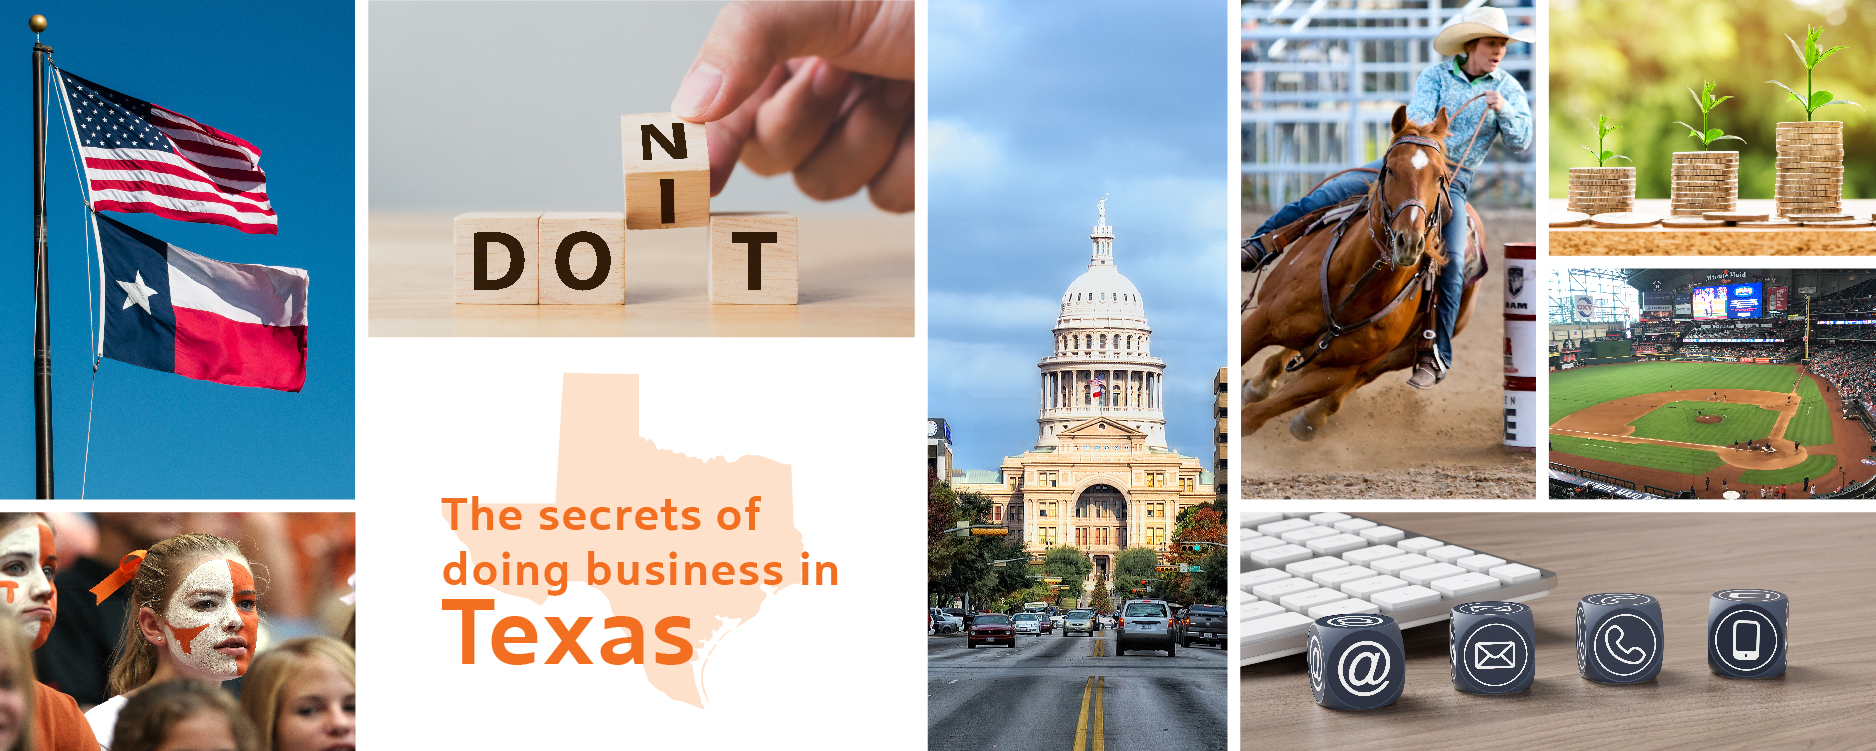 images of doing business in Texas